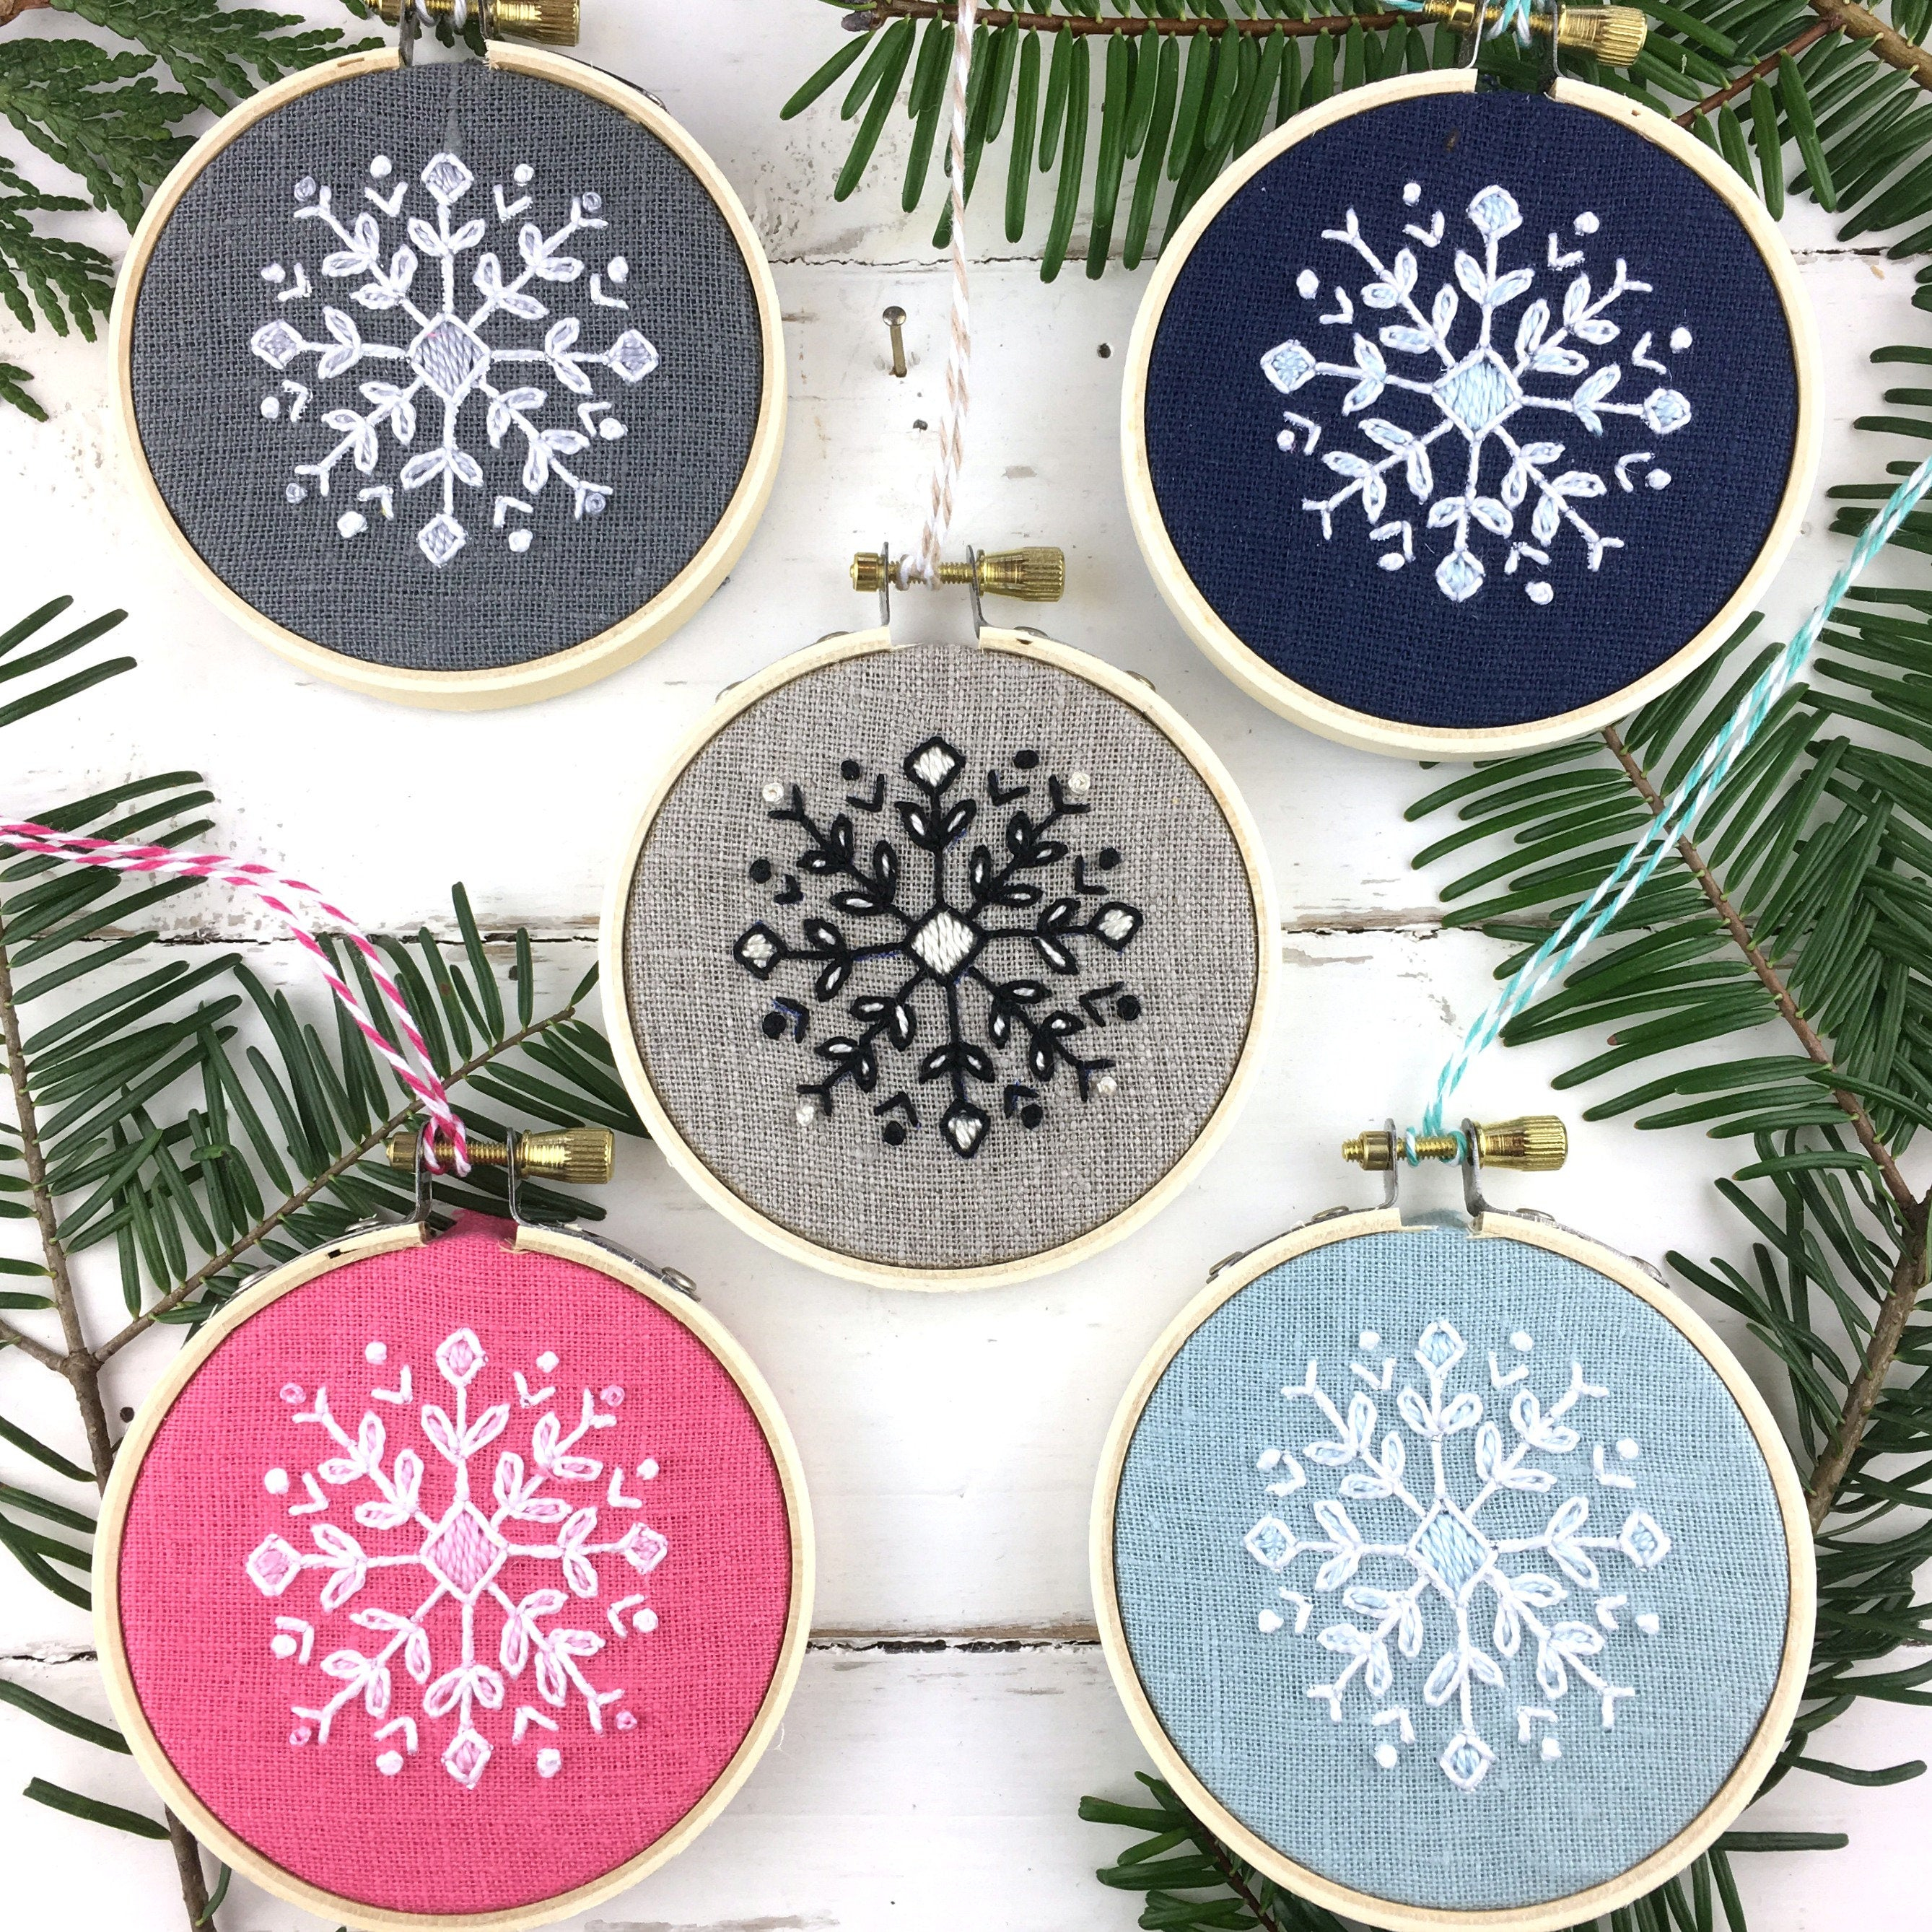 Christmas Embroidery Patterns Natural Christmas Embroidery Kit Ornament Embroidery Snowflake